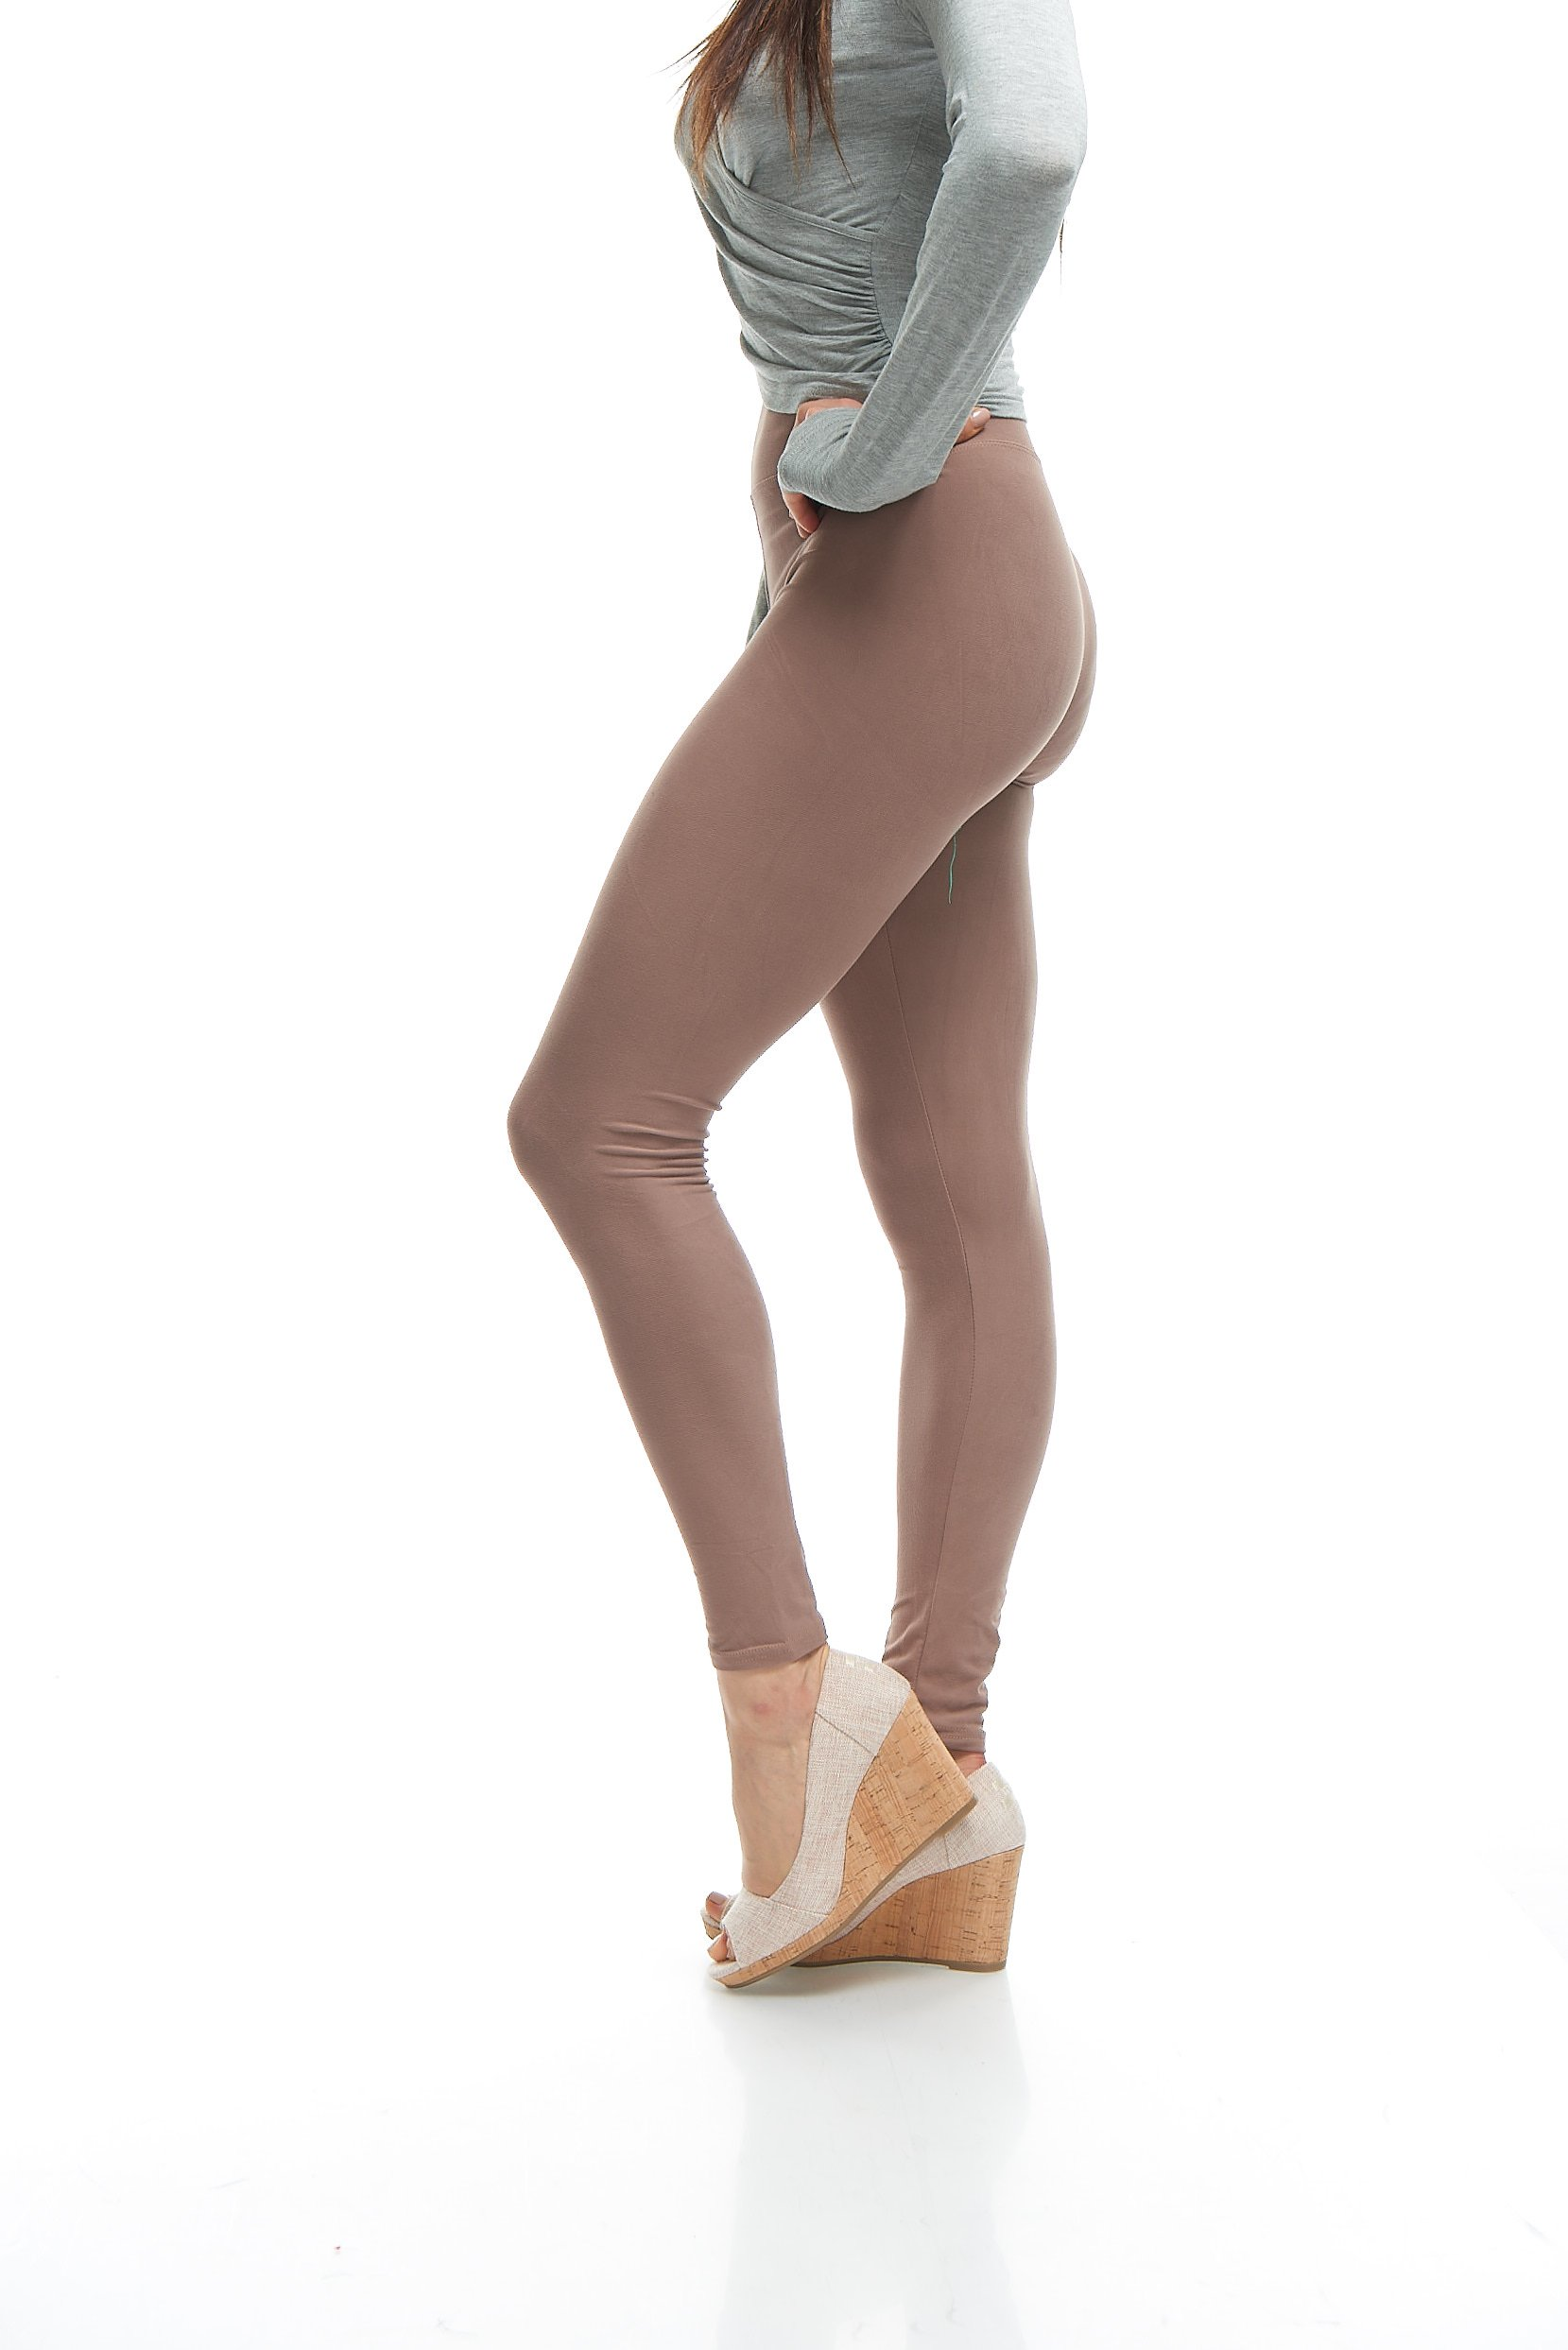 LMB Plus Size Premium Quality Extra Soft Leggings for Tall and Curvy with Yoga Waist - Mocha by LMB